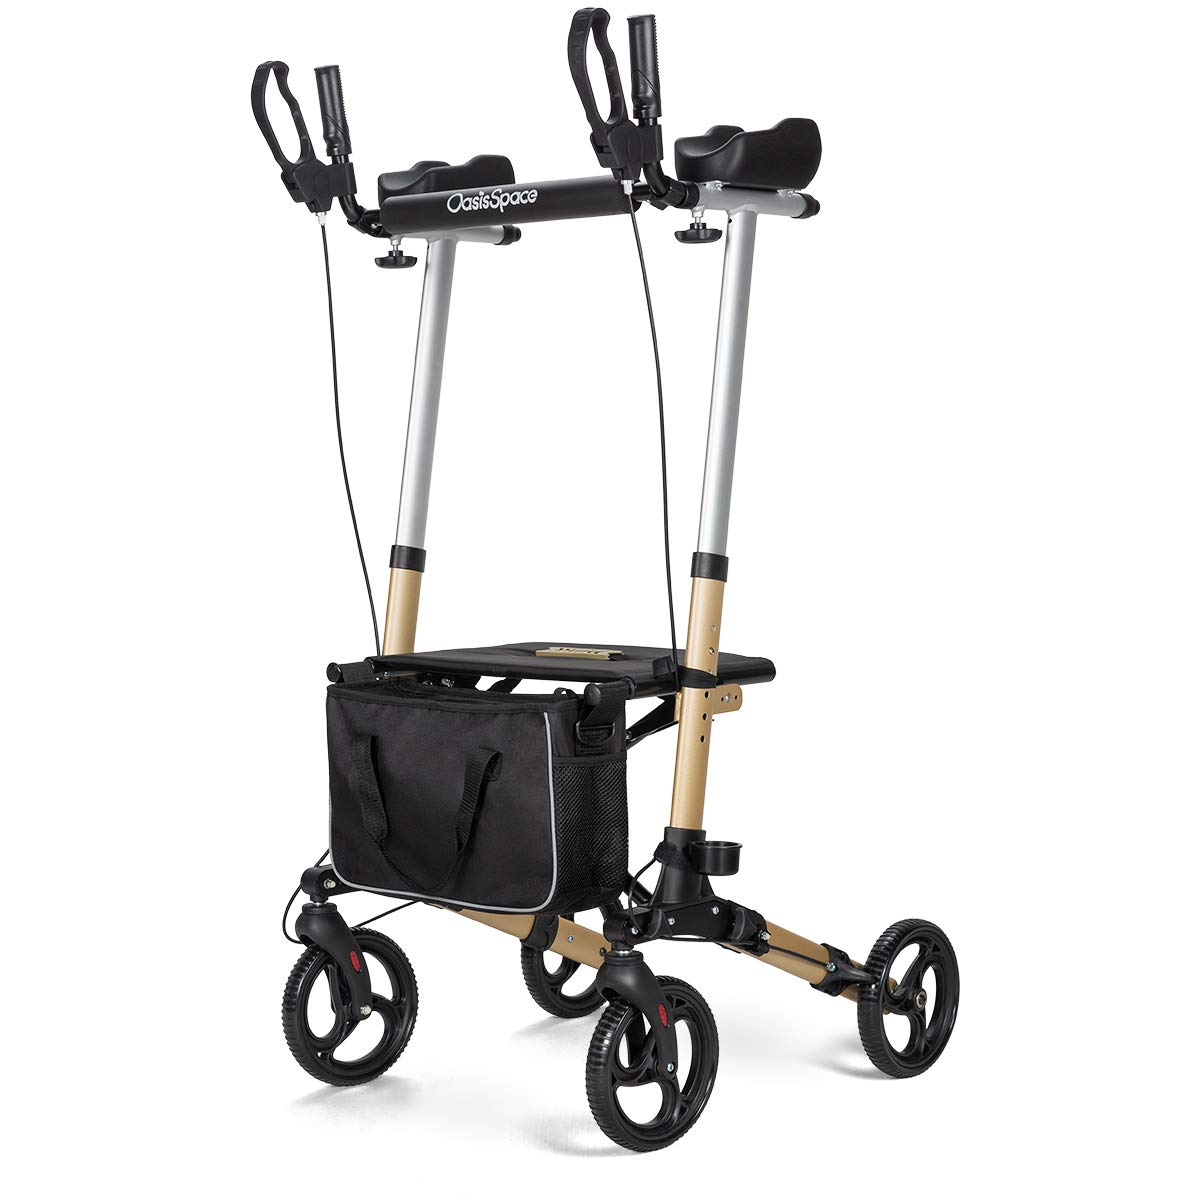 OasisSpace Lightweight Upright Walker- Stand up Rollator Walker with Forearm Support for Senior (Champagne) by OasisSpace